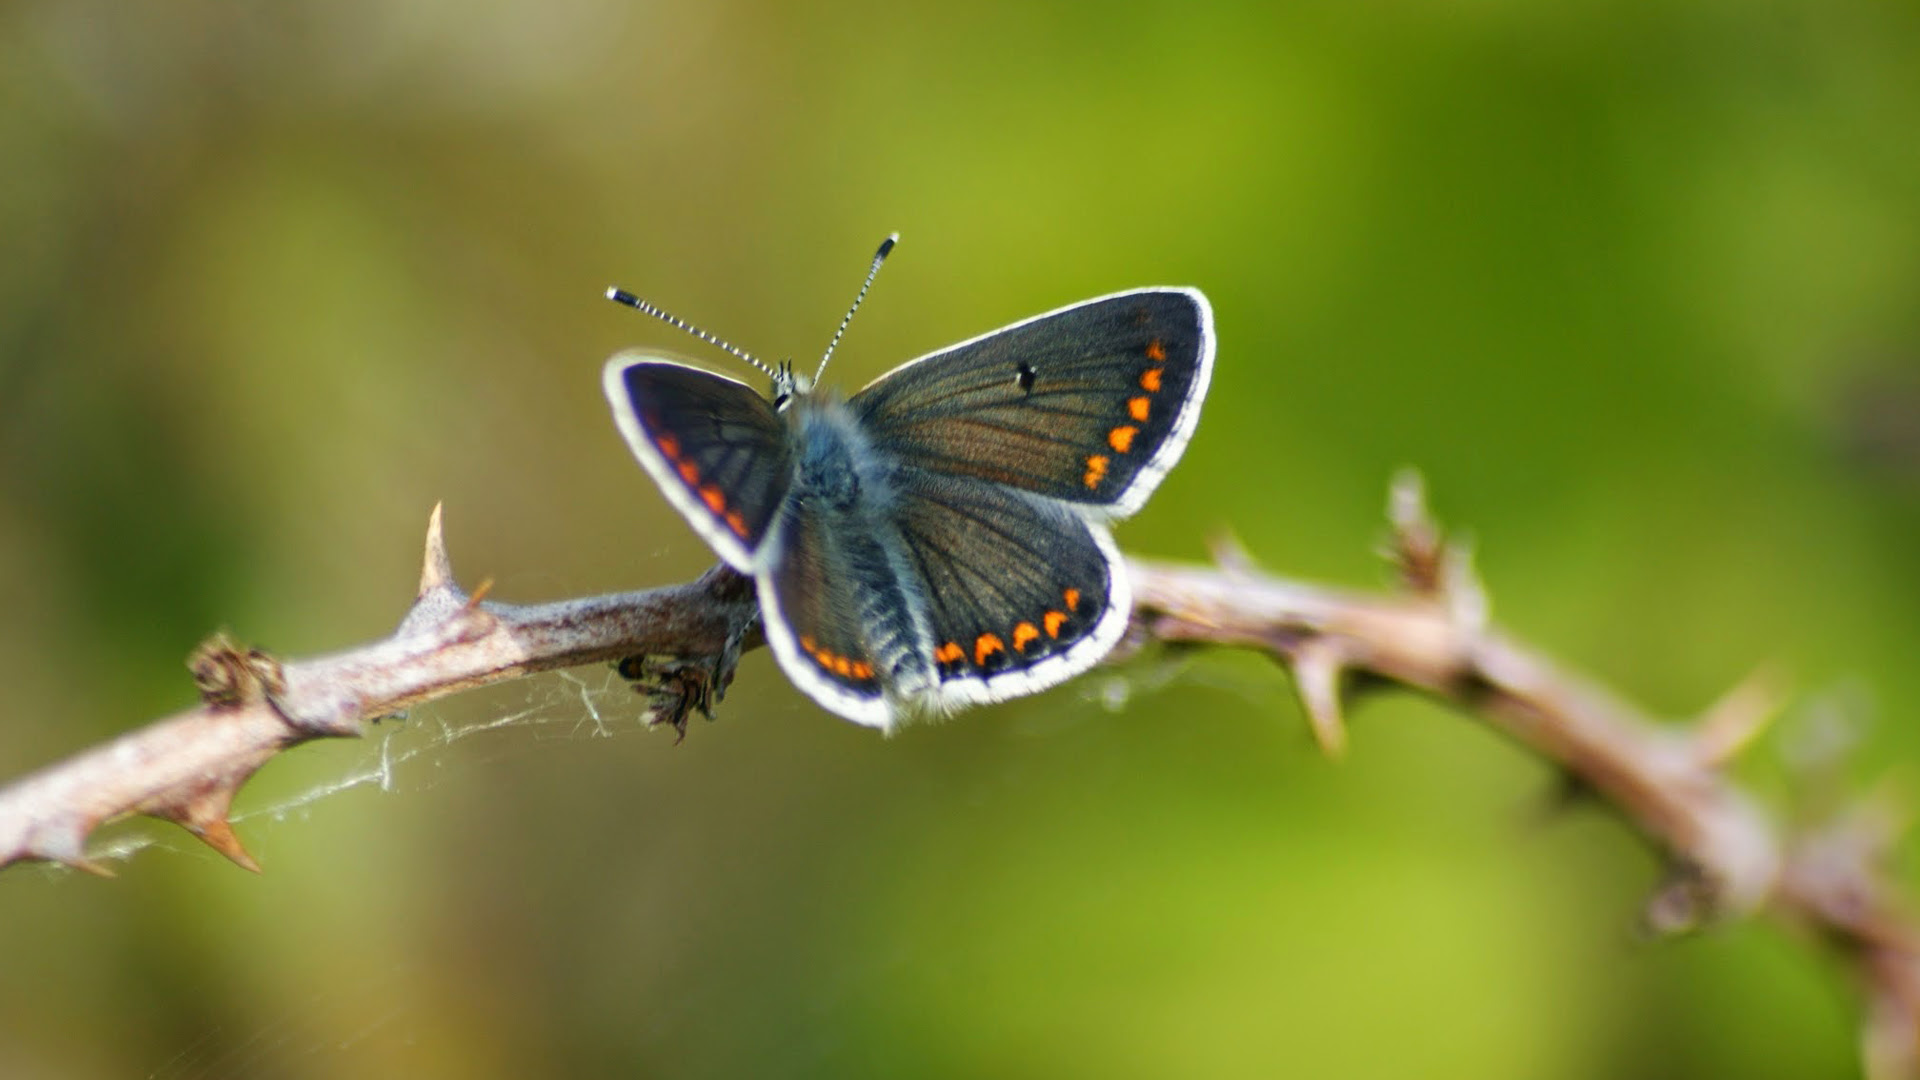 Brown Argus Butterfly in Nature for Wallpaper - HD ...